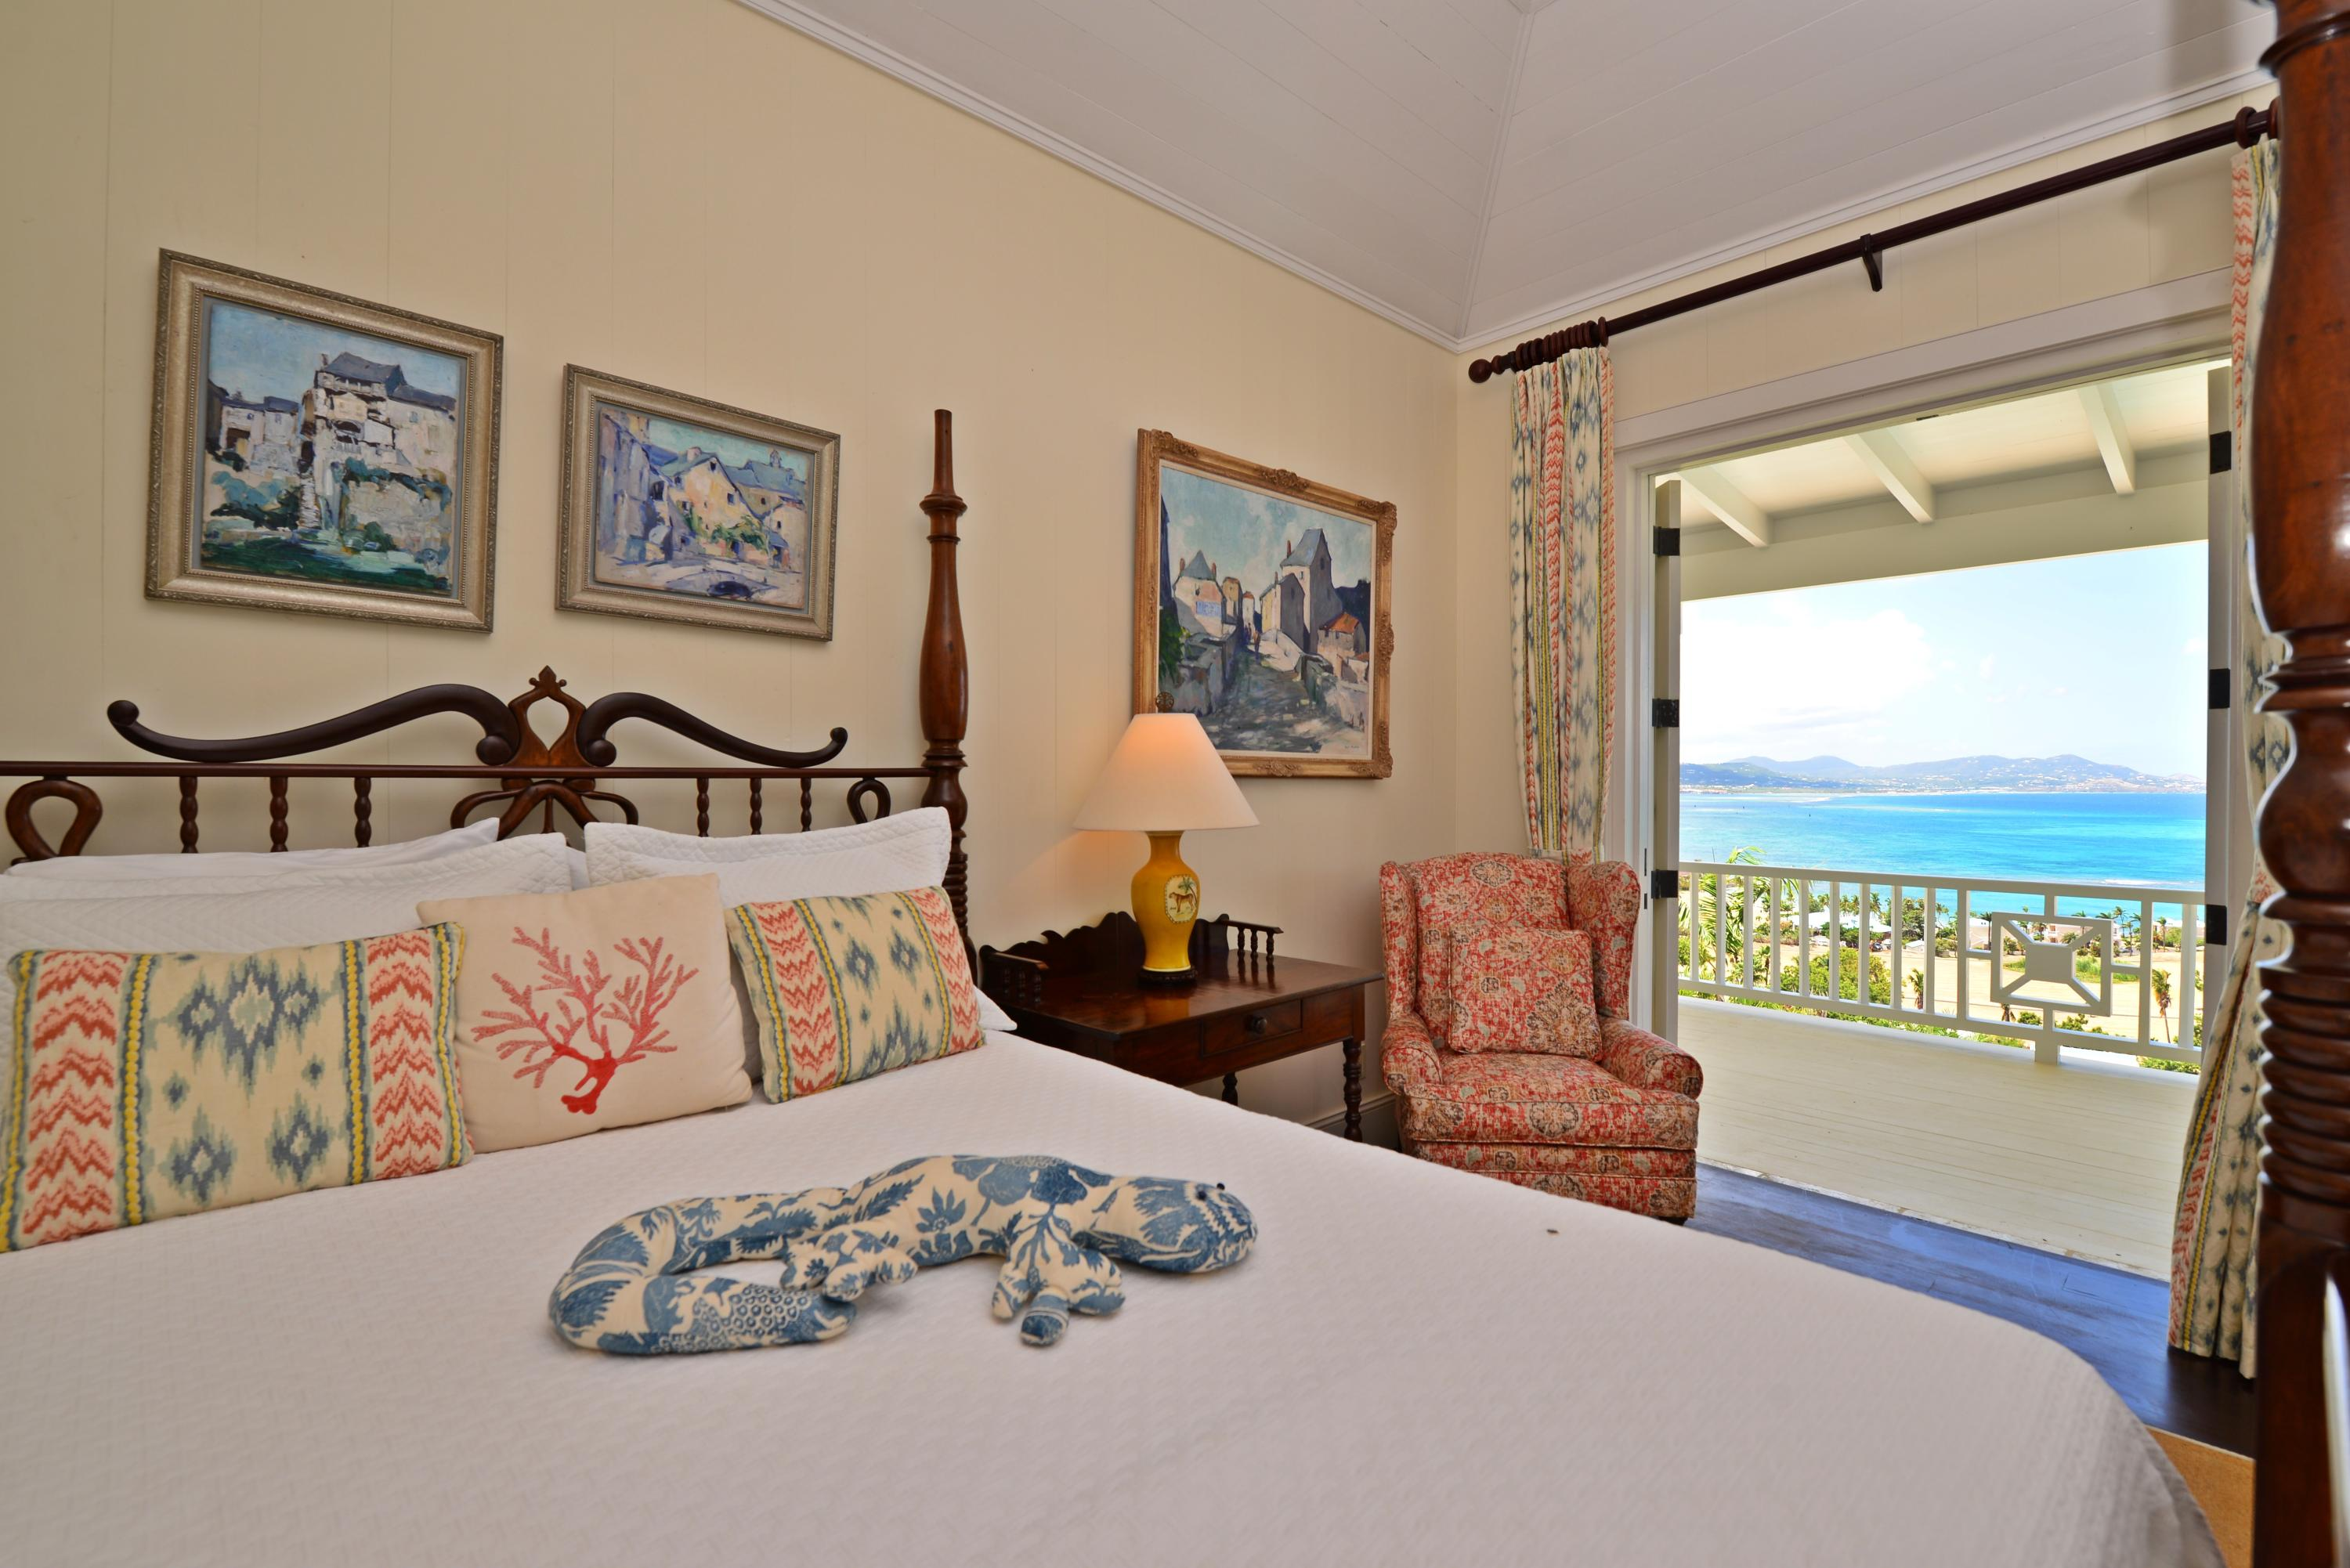 Guest bedroom 1 with sea view